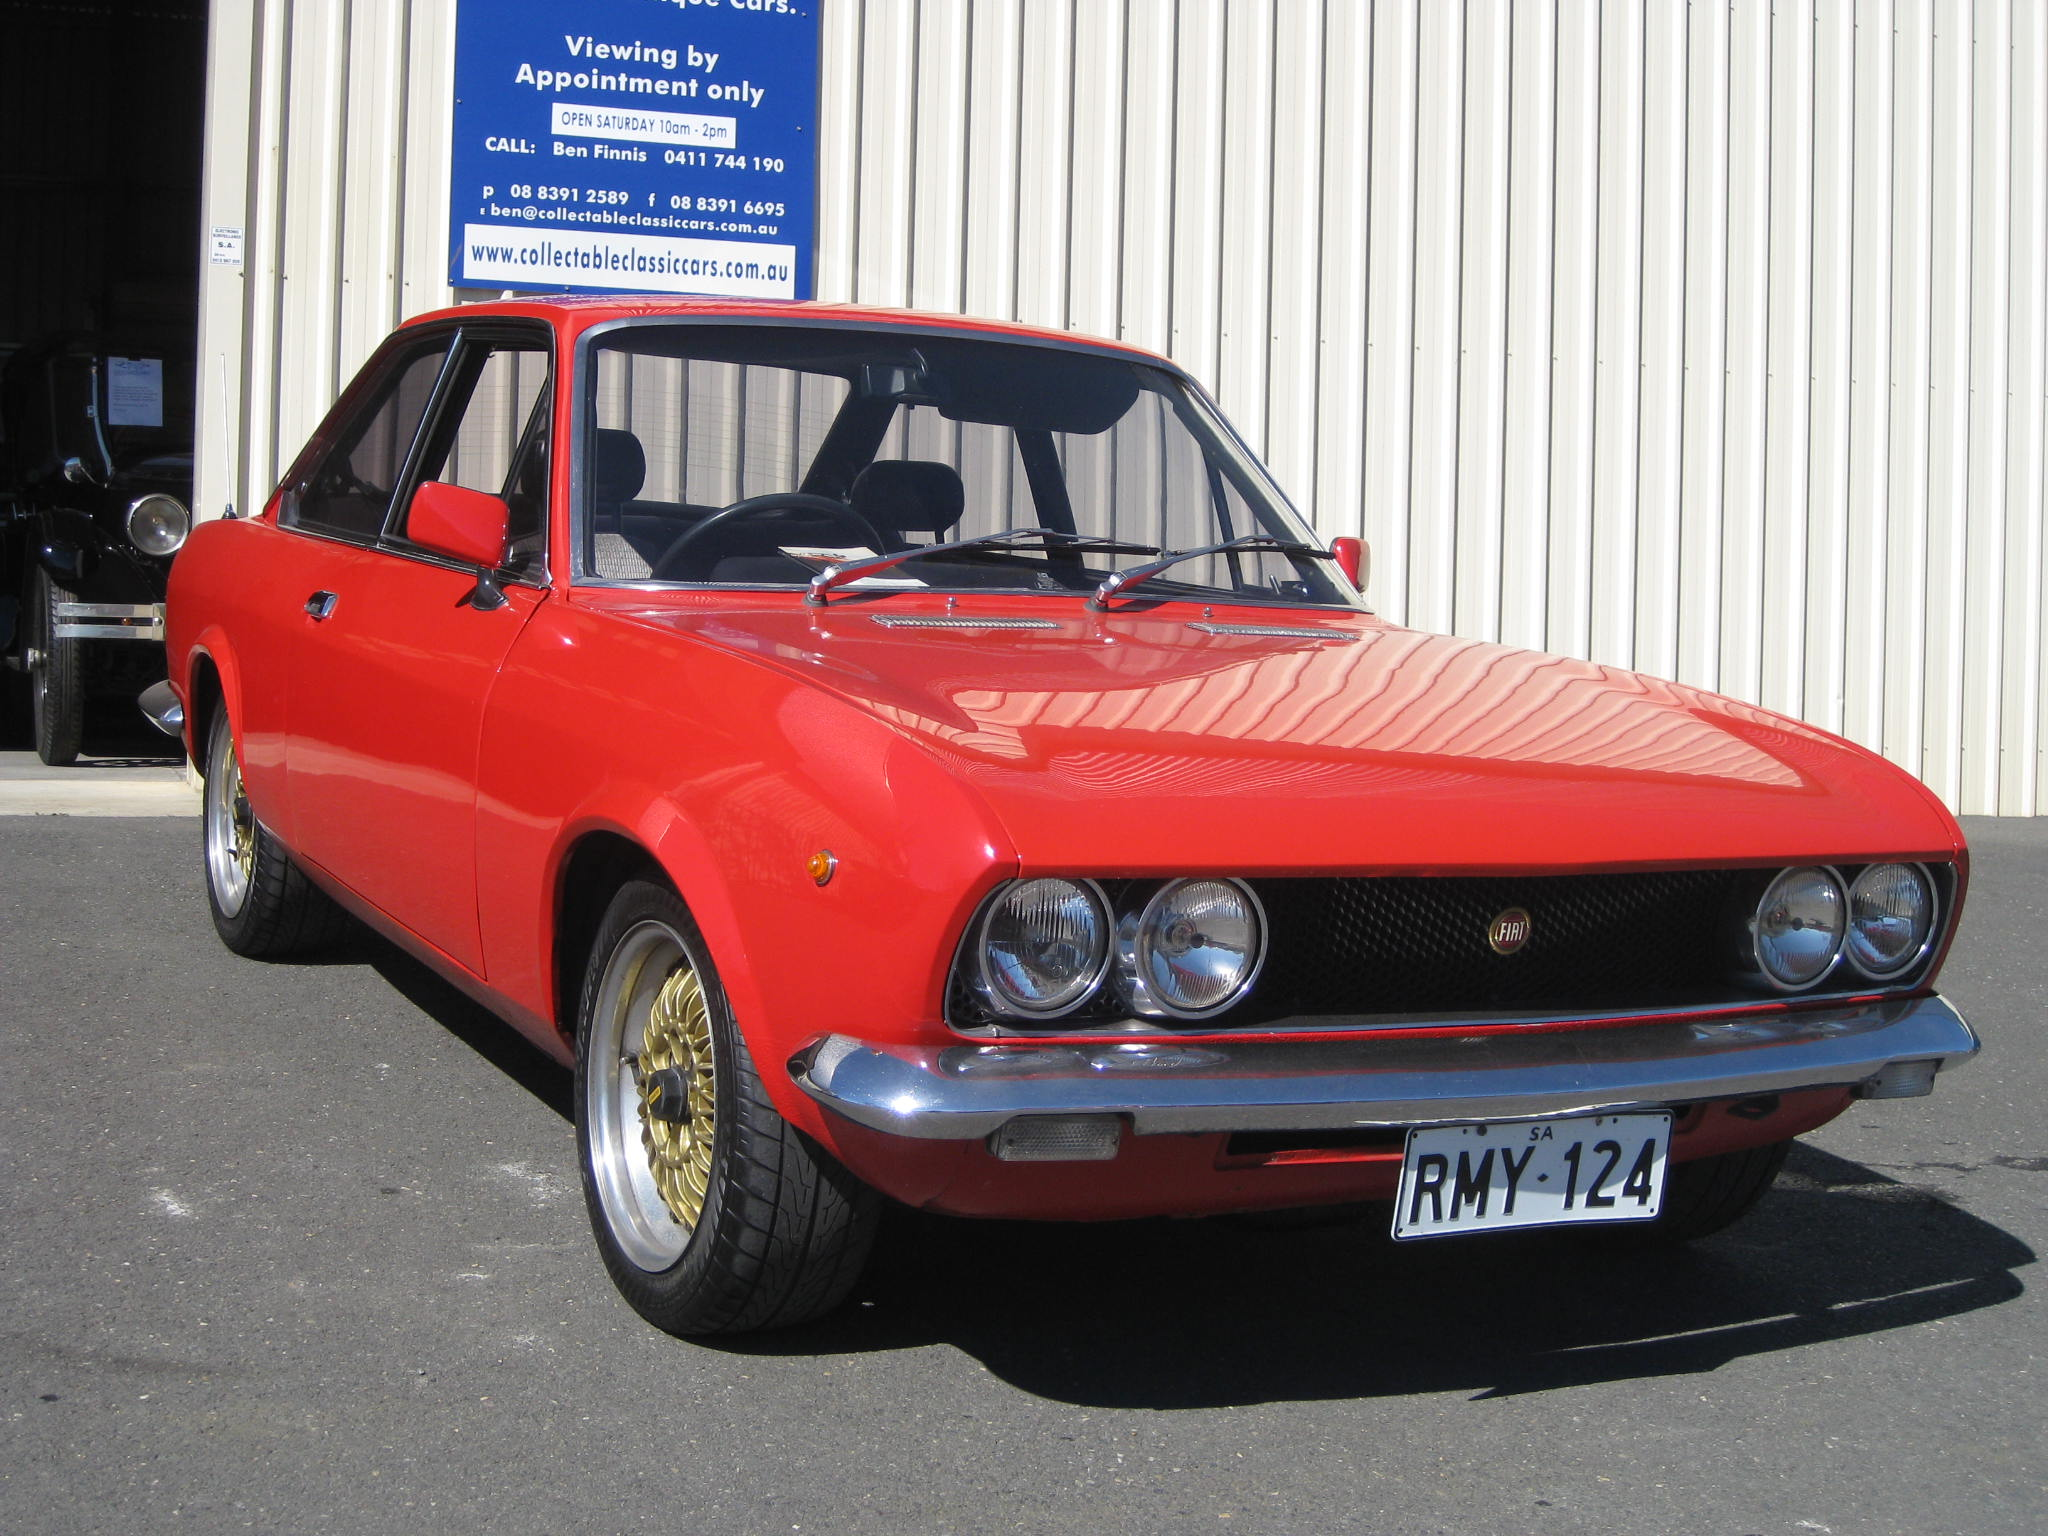 1972 Fiat 124 BC – Collectable Classic Cars